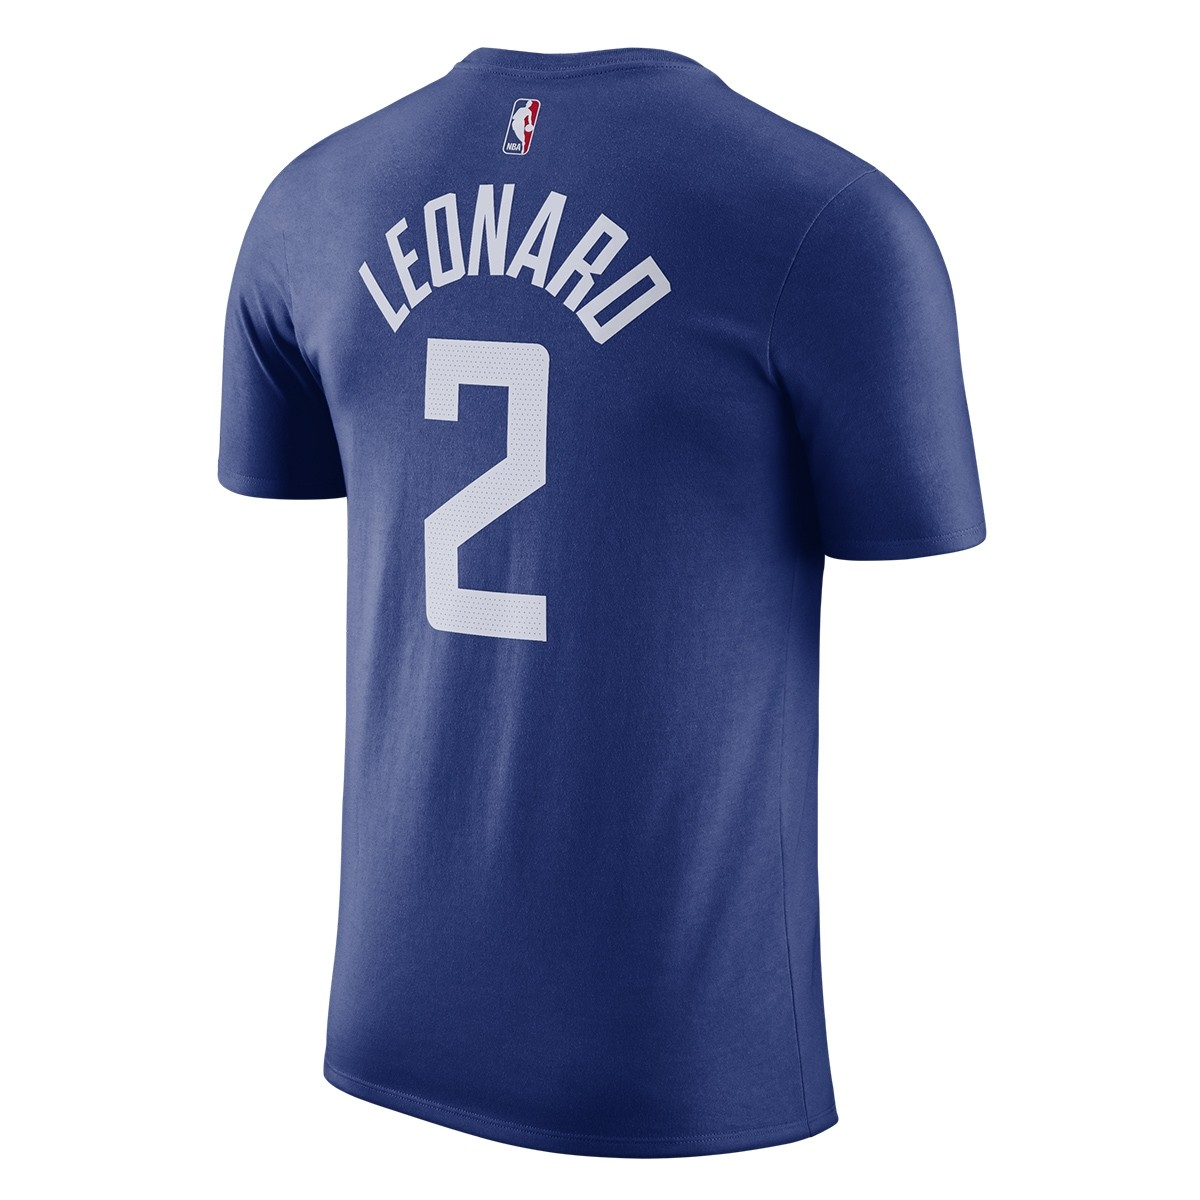 T-Shirt Los Angeles Clippers 'Kawhi Leonard'-CV8526-499